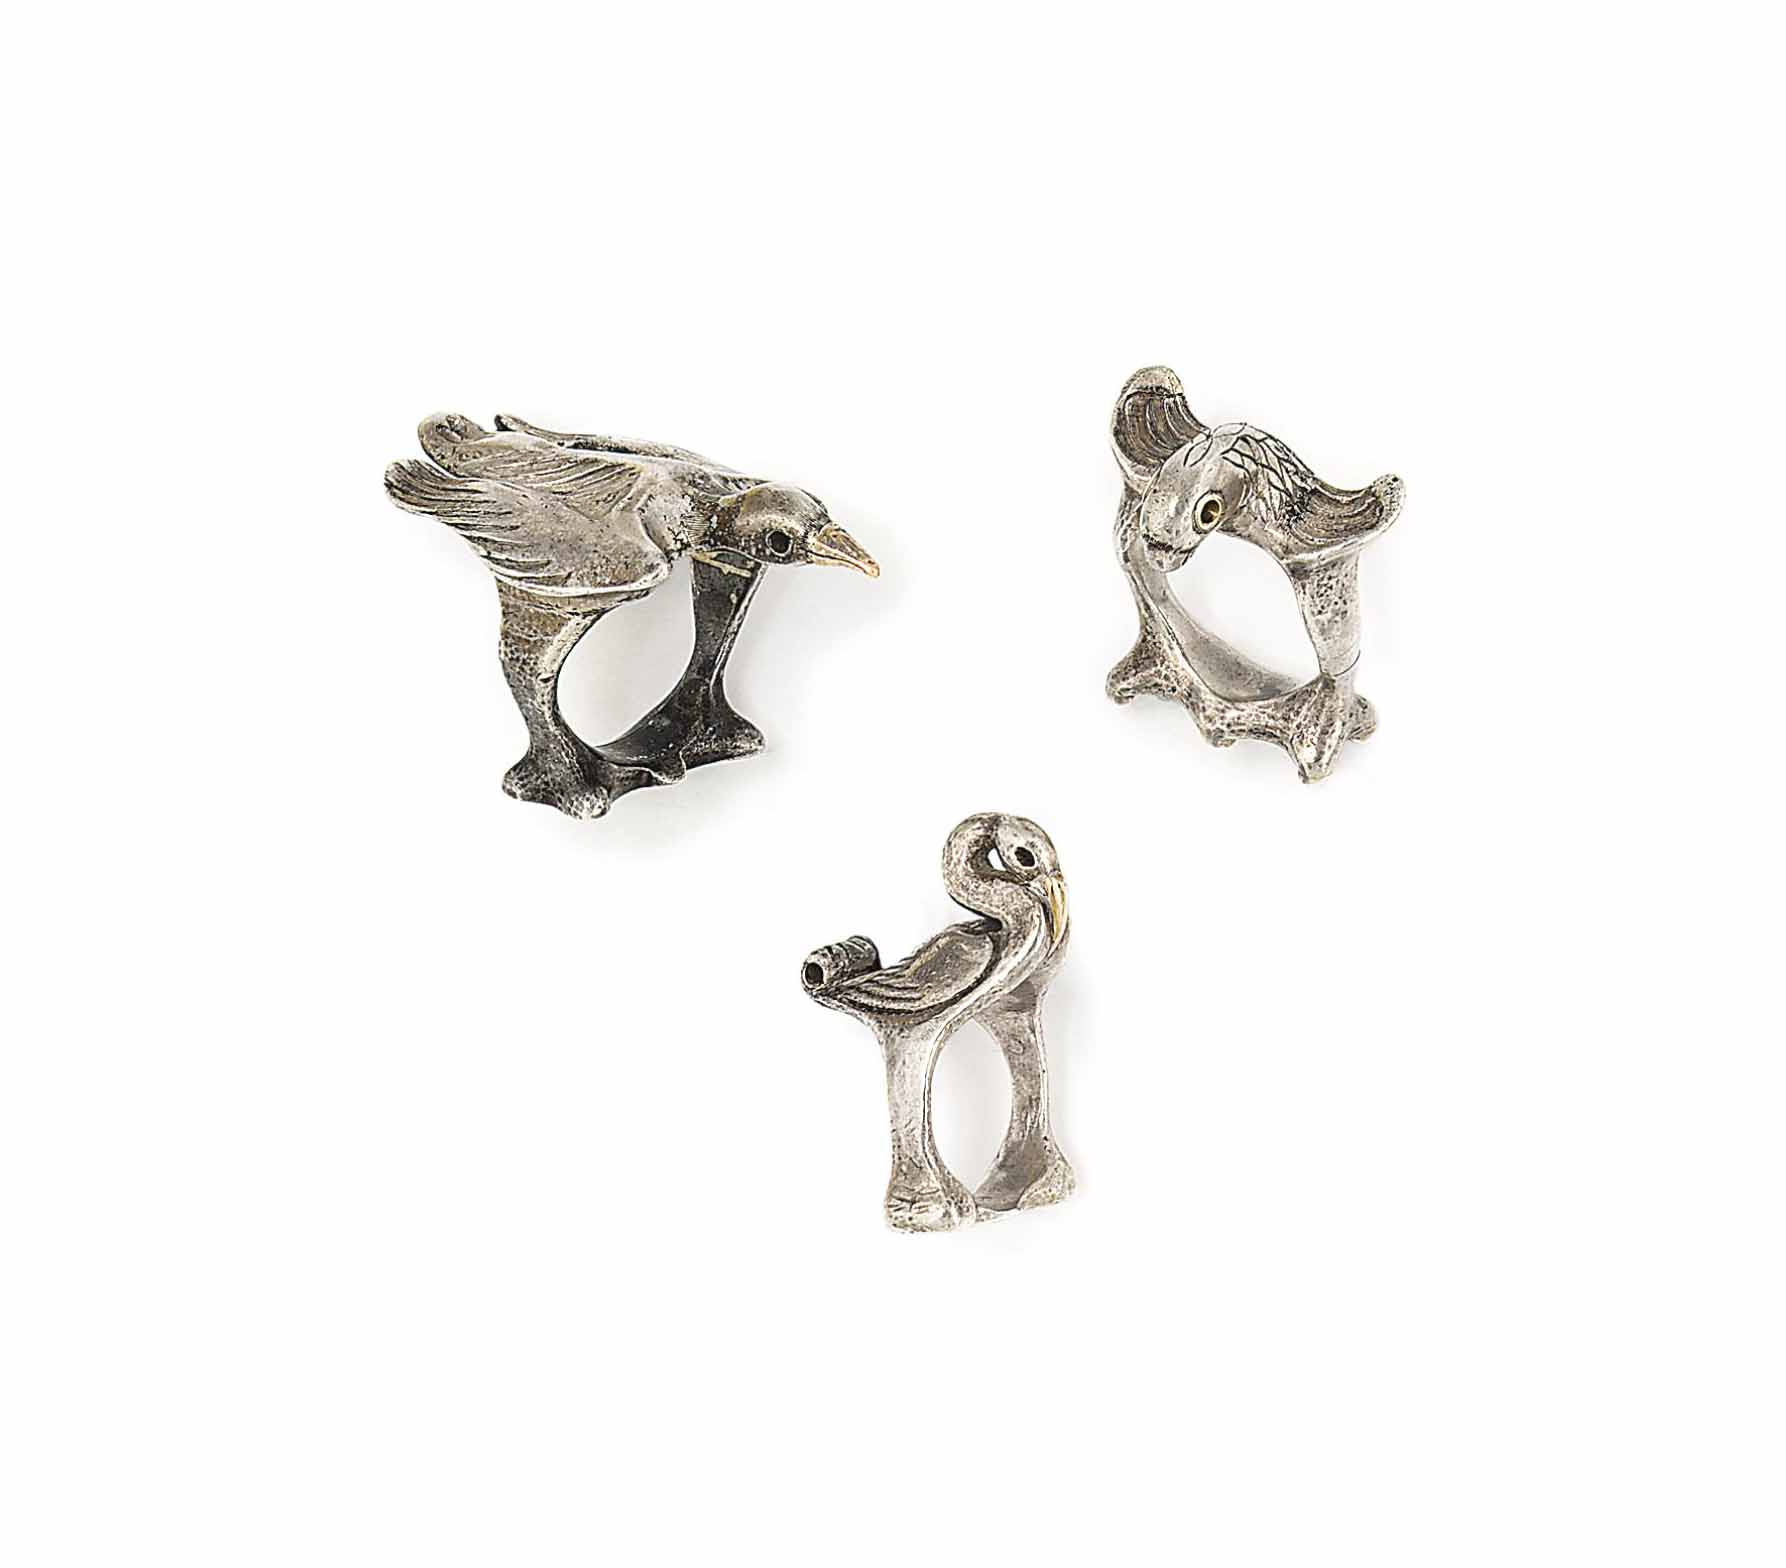 THREE FIGURAL SILVER RINGS, BY